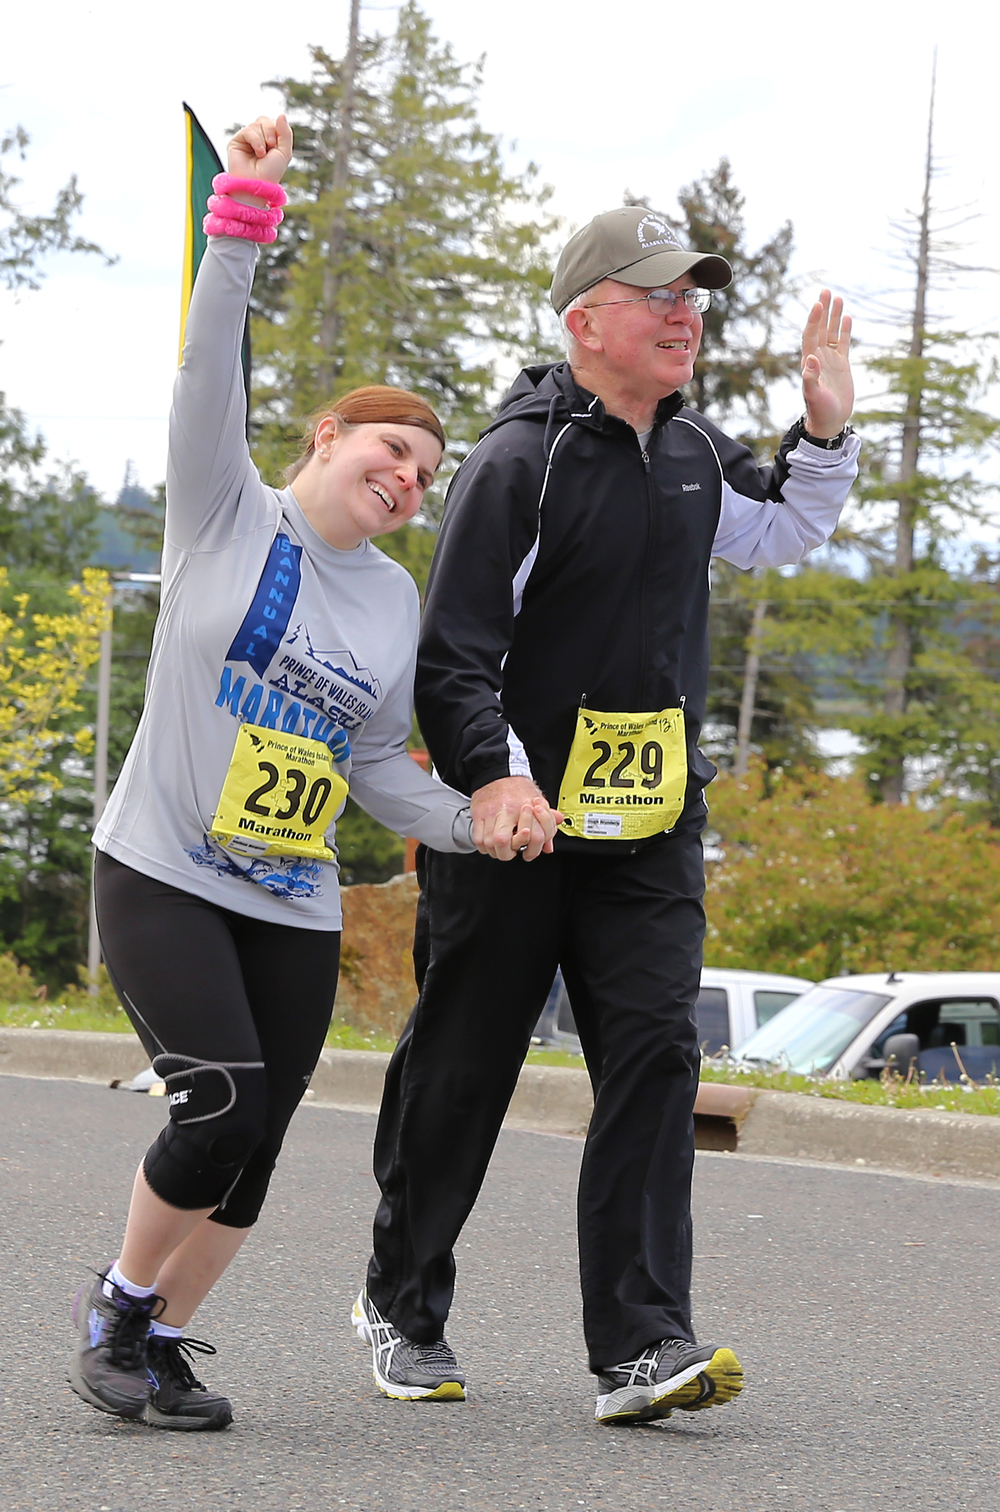 Hugh Wonderly of Indianapolis, Indiana and his daughter Melissa Bergtold of Craig, Alaska triumphantly finish the half-marathon.